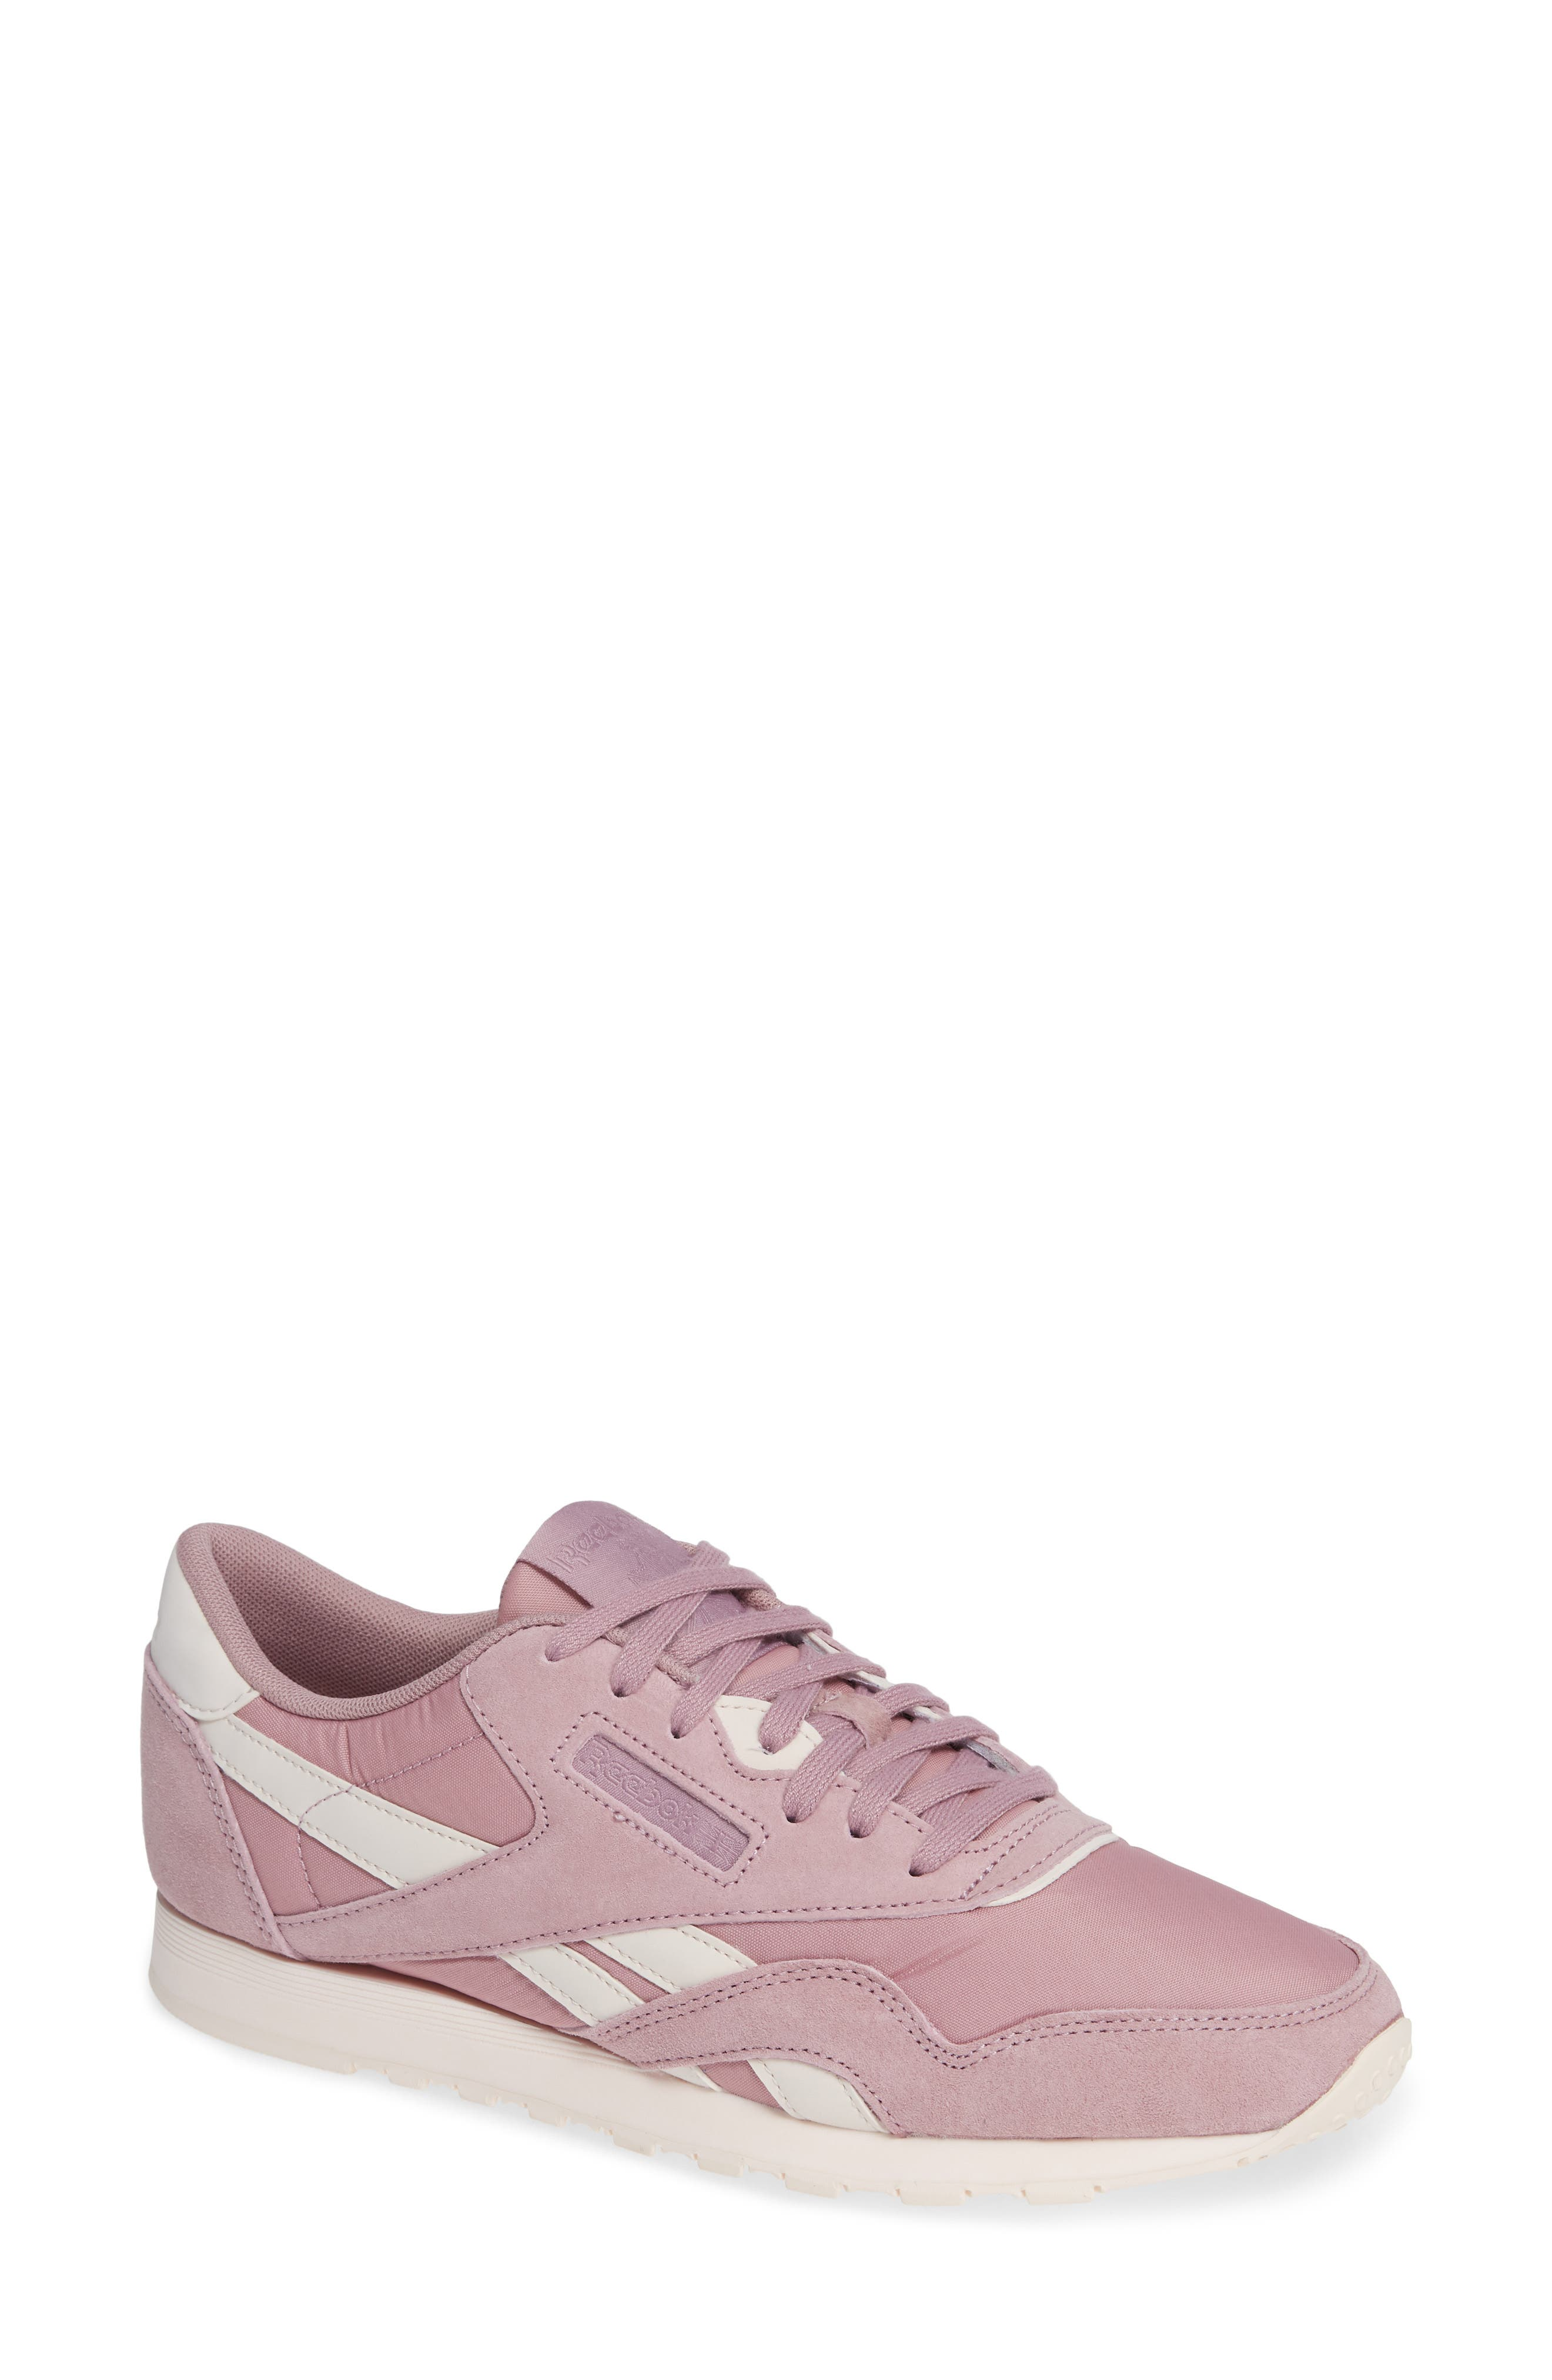 Classic Sneaker,                             Main thumbnail 1, color,                             INFUSED LILAC/ PALE PINK